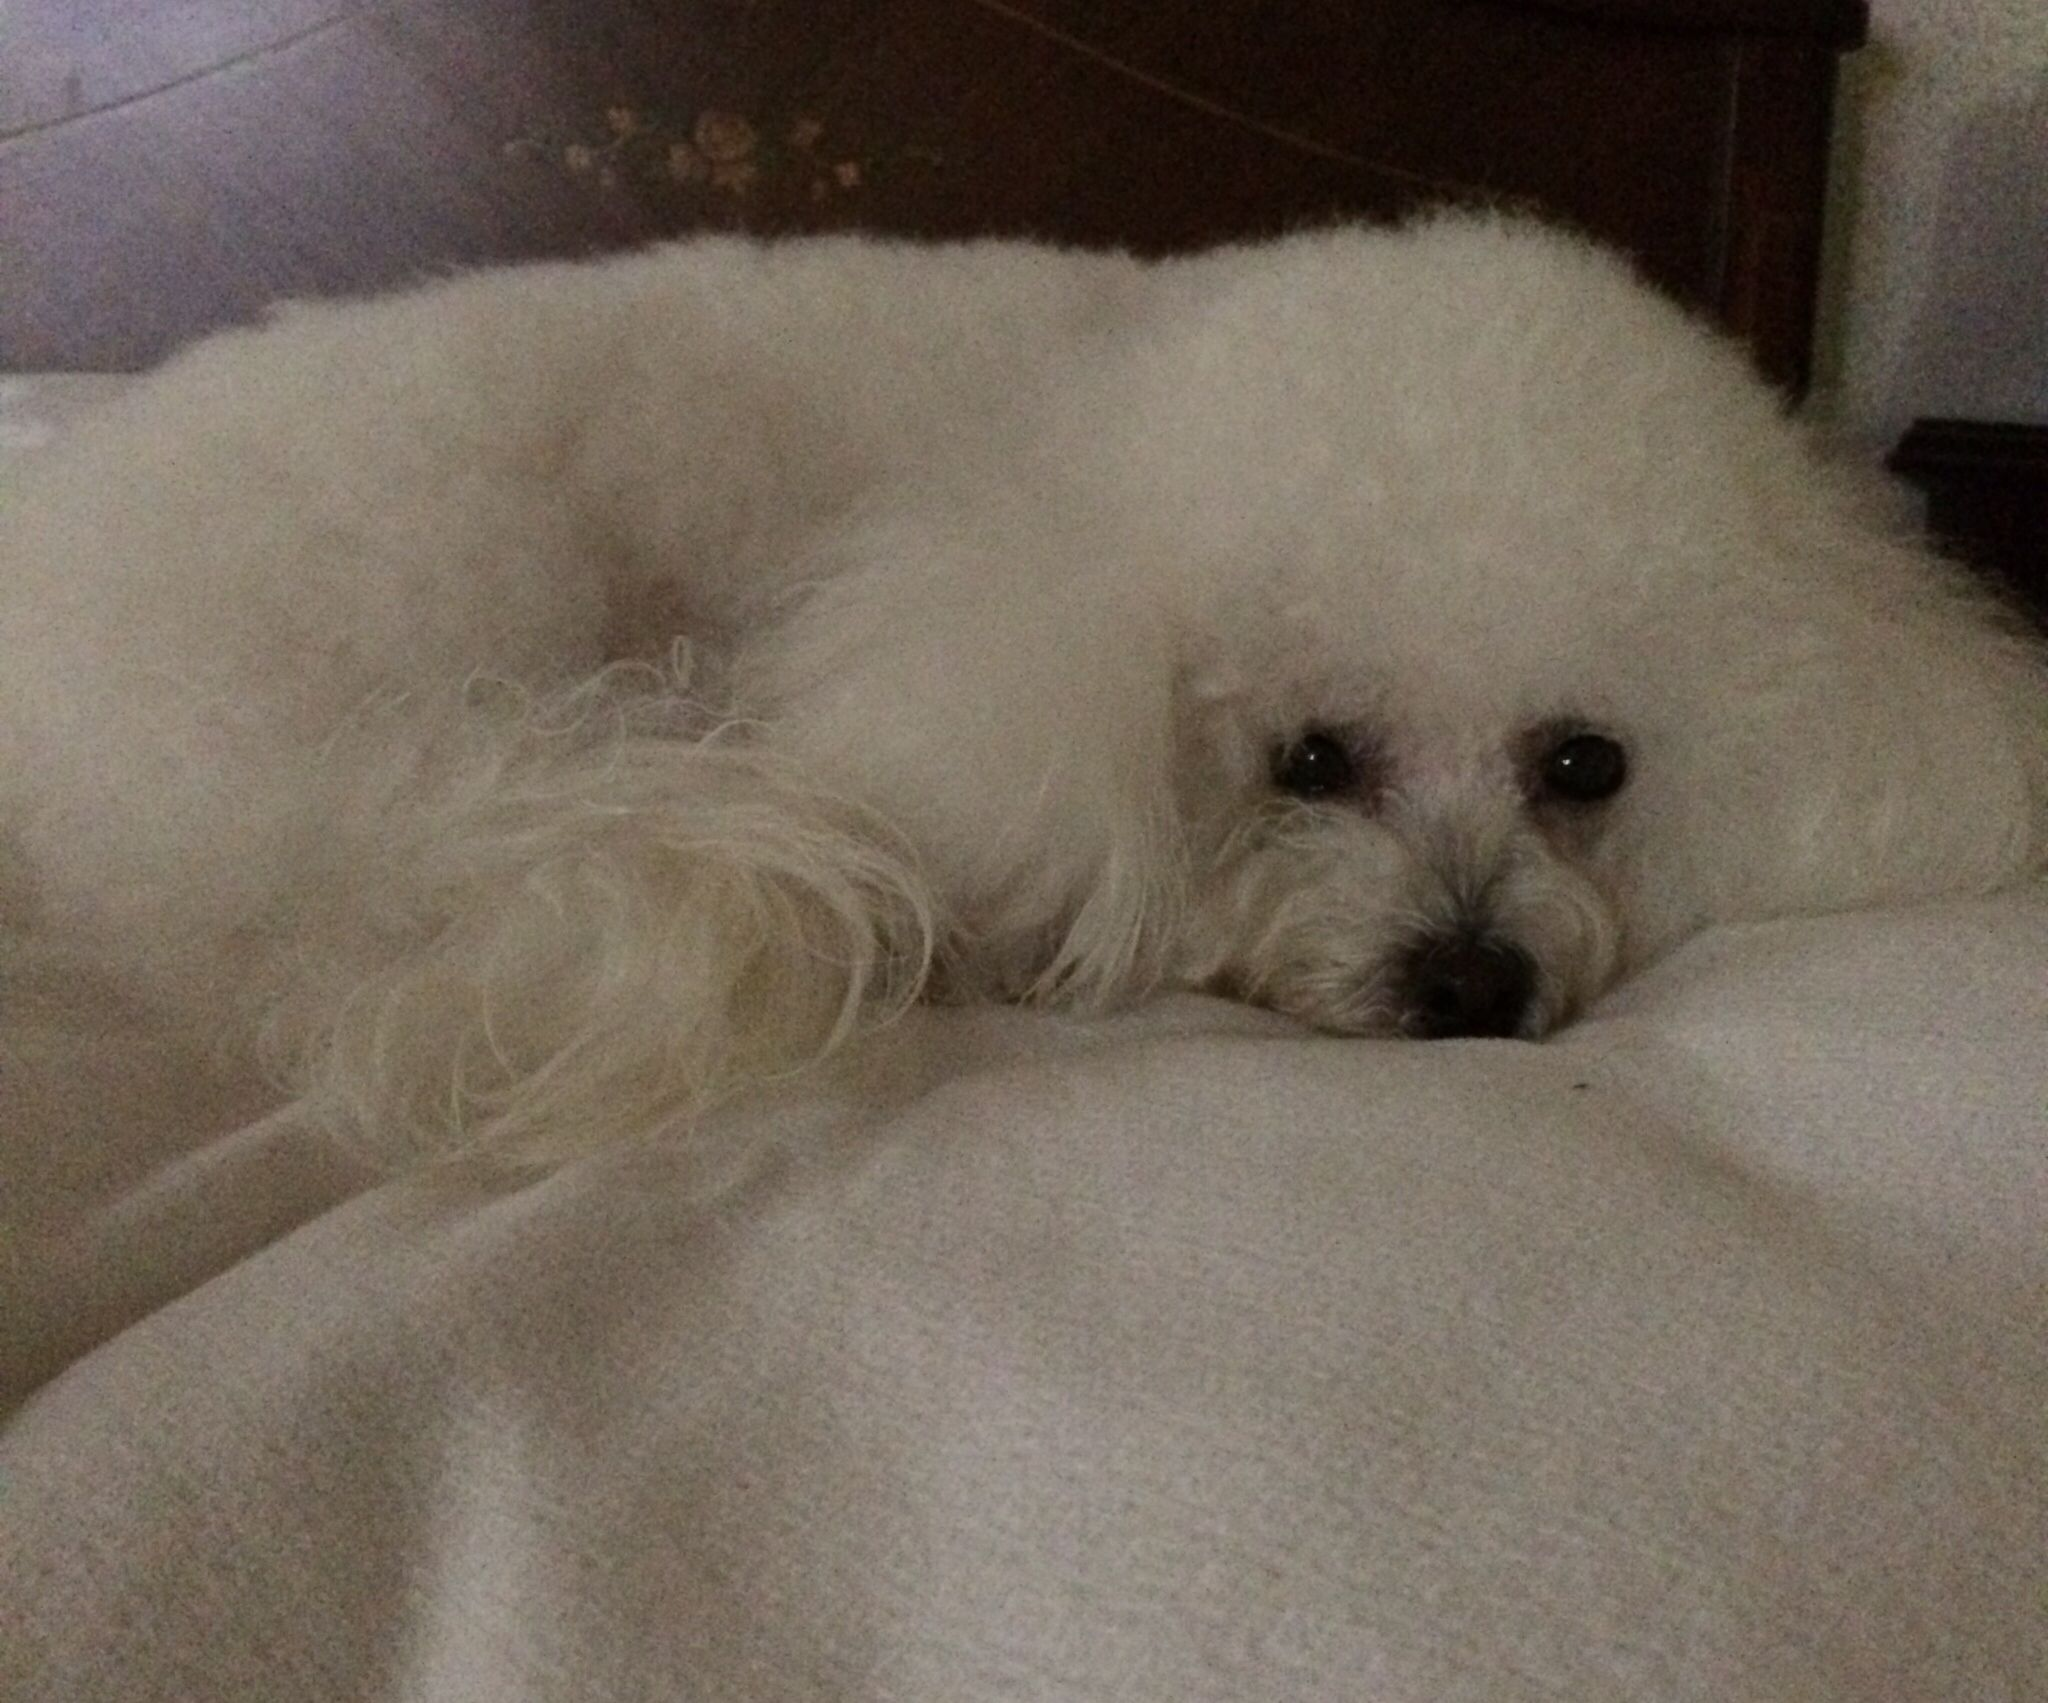 Loli Bichon Frise Bichon Frise Bichon Frise Animals Dogs